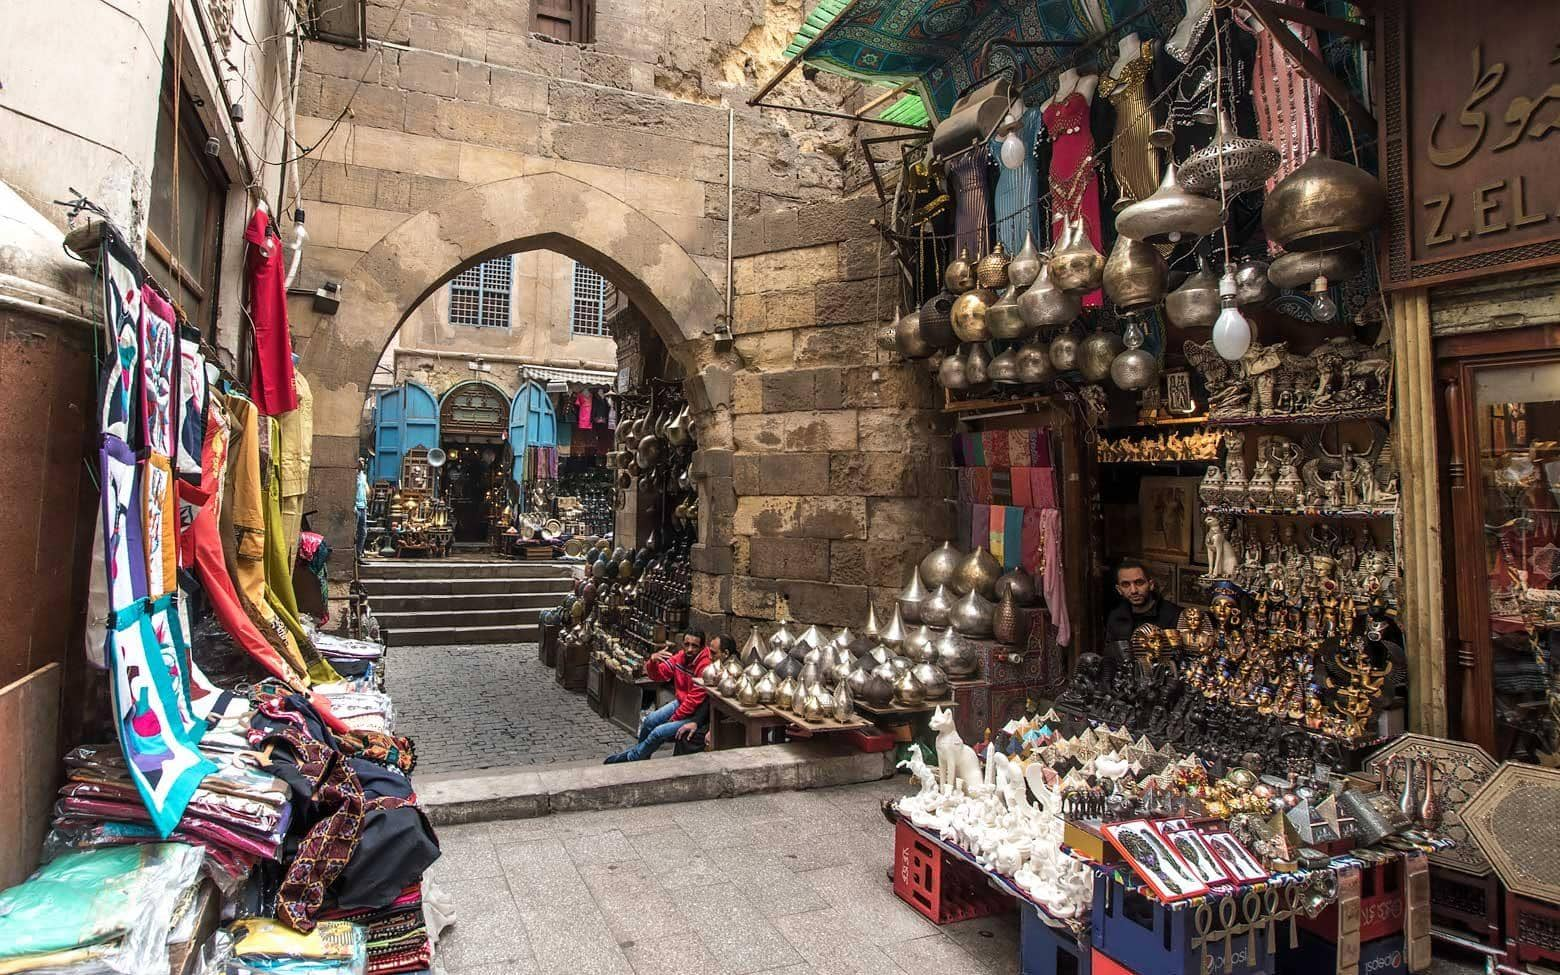 things to see in cairo - Grand bazaar